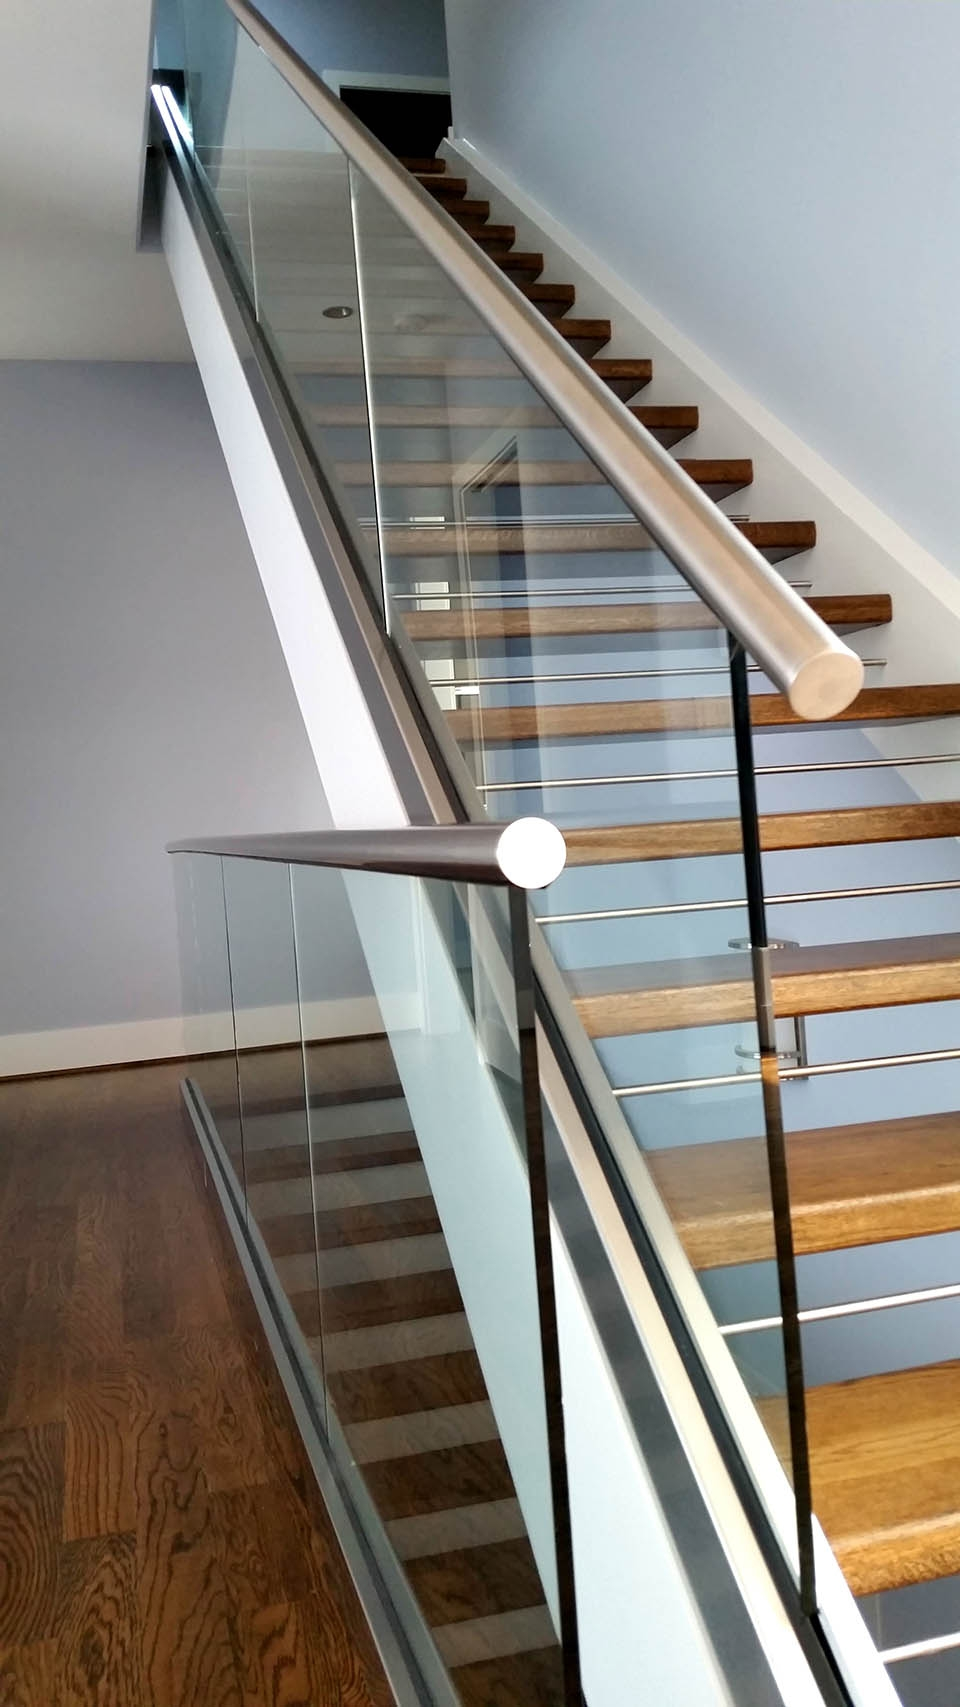 Glass Stair Railings Artistic Stairs Canada | Glass Balusters For Stairs